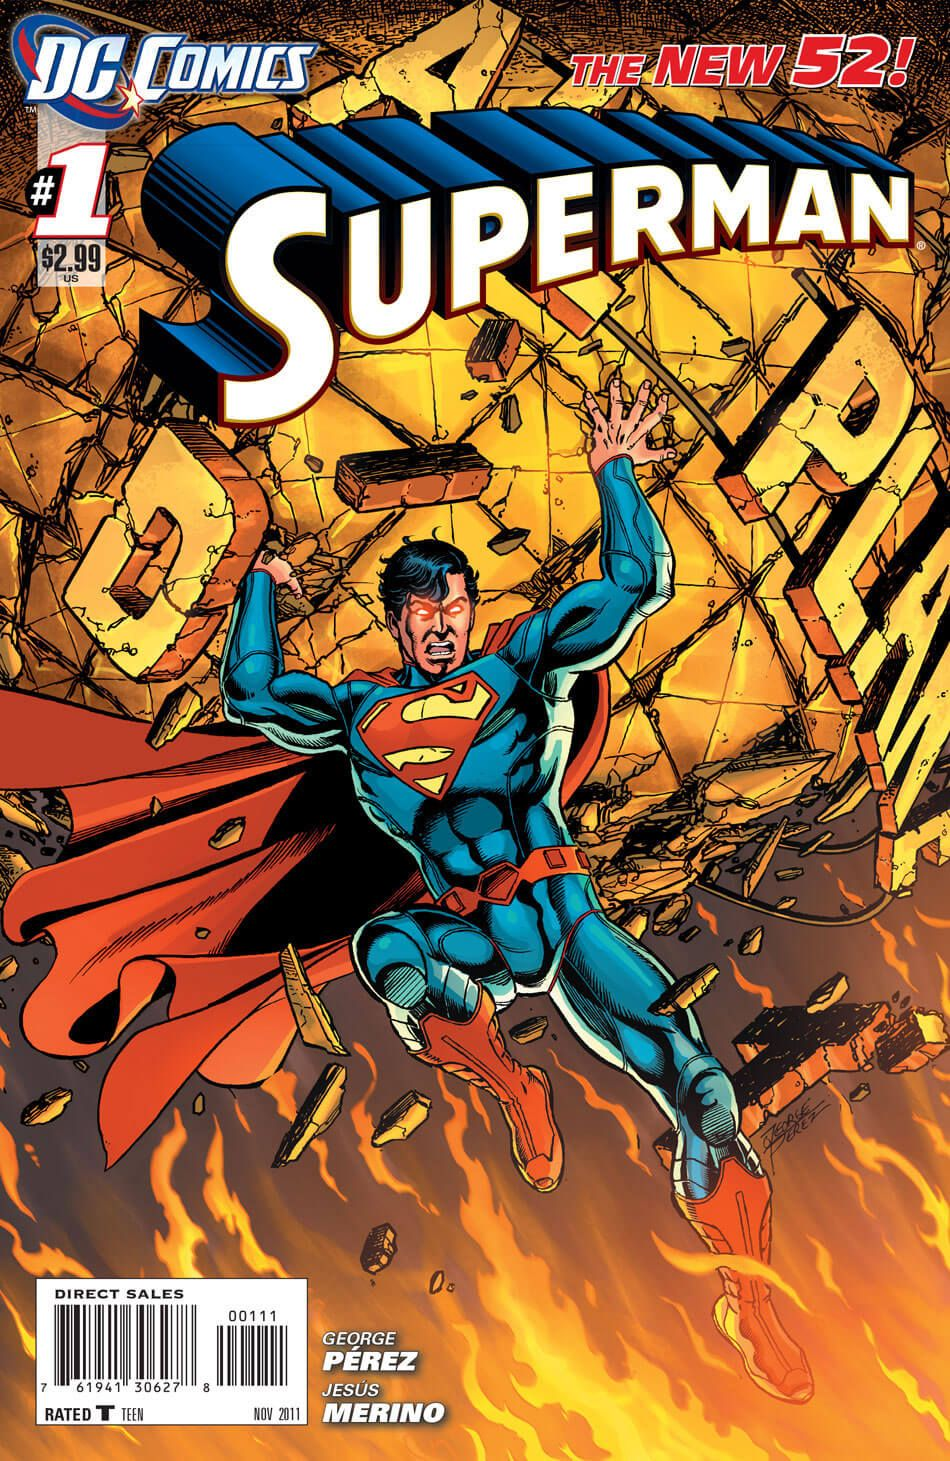 In Case You Needed Reminding: Superman is a Dick.